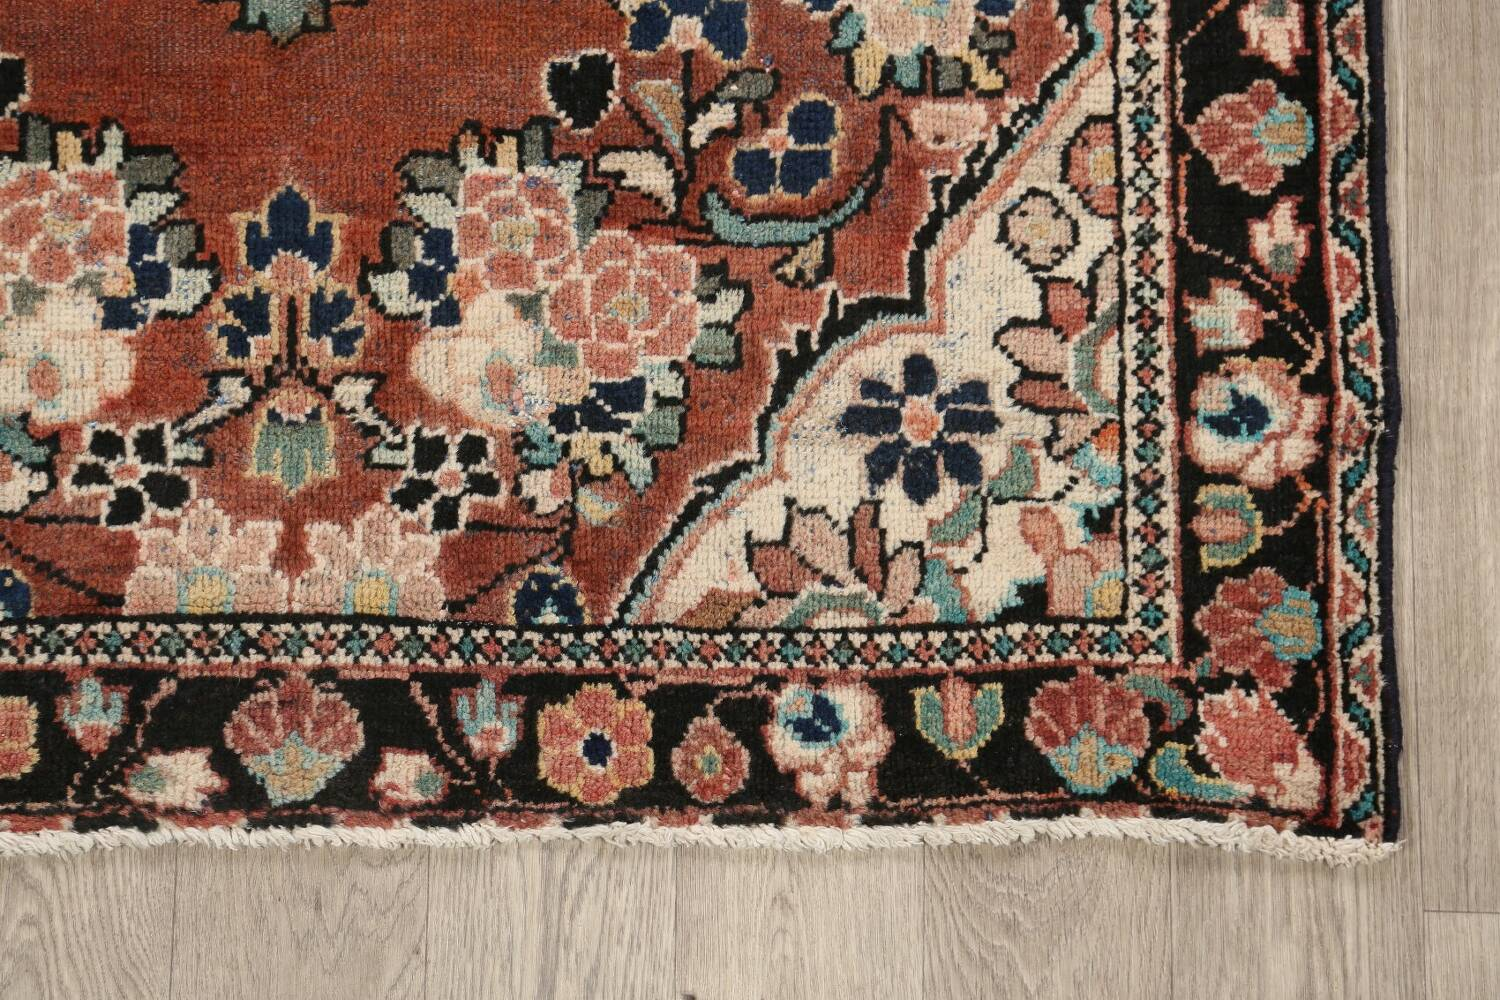 Antique Floral Mahal Persian Area Rug 4x6 image 5